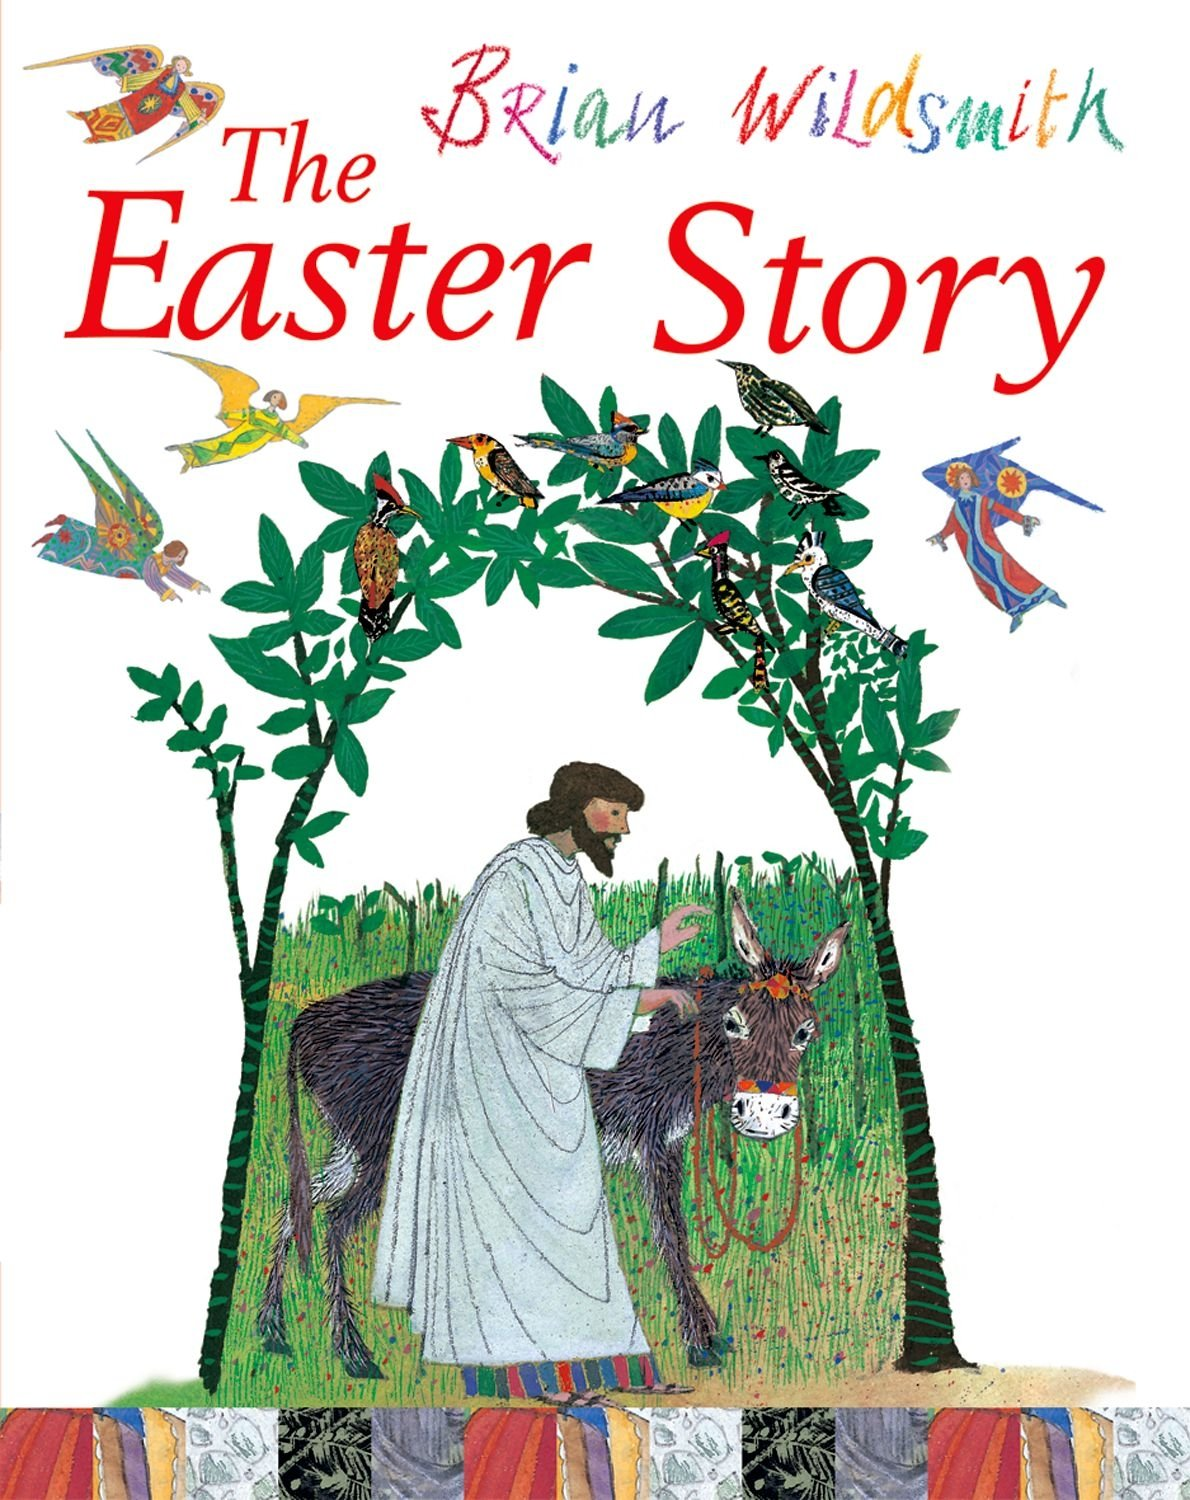 The Easter Story: Amazon.co.uk: Wildsmith, Brian: Books